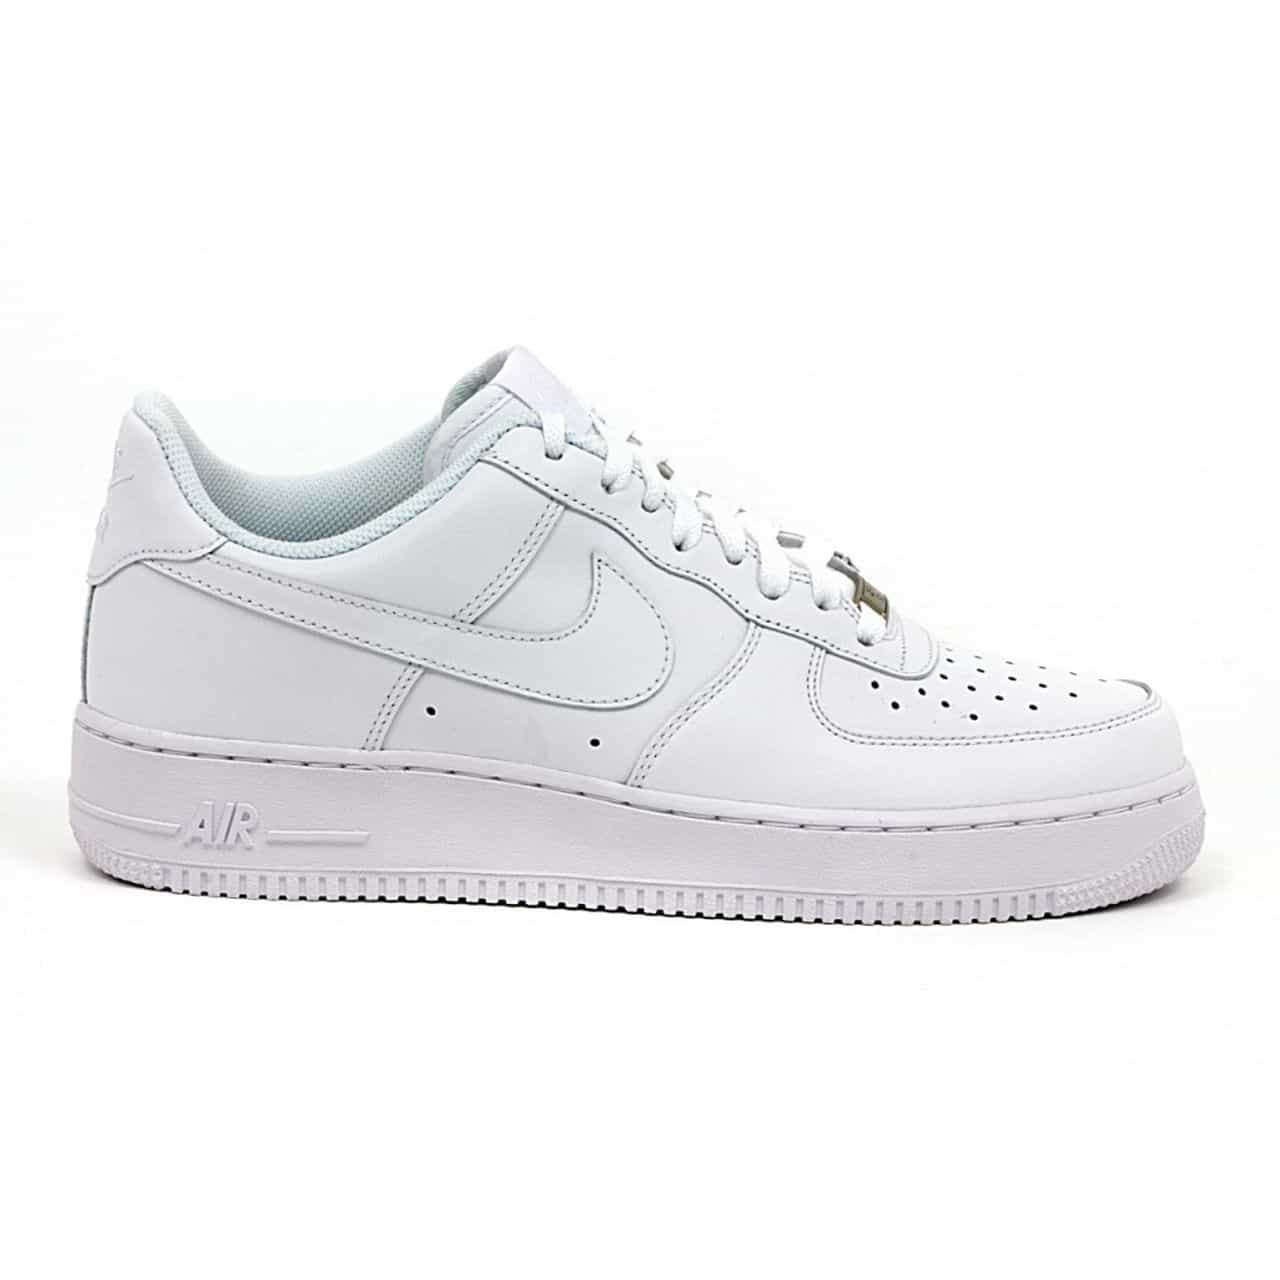 ADIDASI ORIGINALI NIKE AIR FORCE 1 '07 - 315122 111